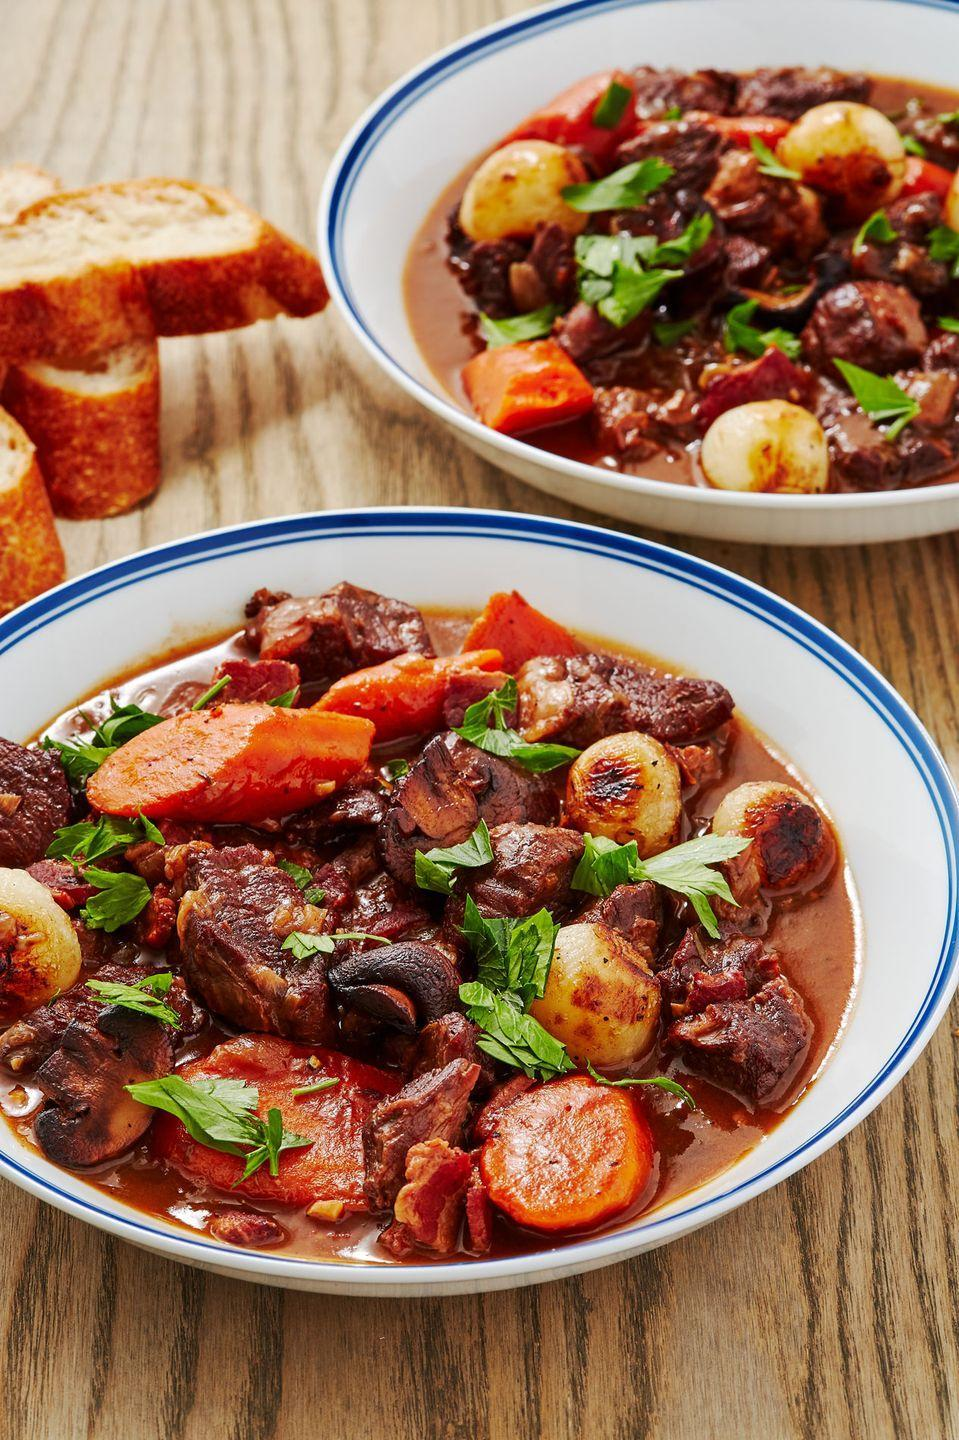 "<p>Made with red wine and pairs perfectly with it too!</p><p>Get the recipe from <a href=""https://www.delish.com/cooking/recipe-ideas/a28845919/beef-bourguignon-recipe/"" rel=""nofollow noopener"" target=""_blank"" data-ylk=""slk:Delish"" class=""link rapid-noclick-resp"">Delish</a>.</p>"